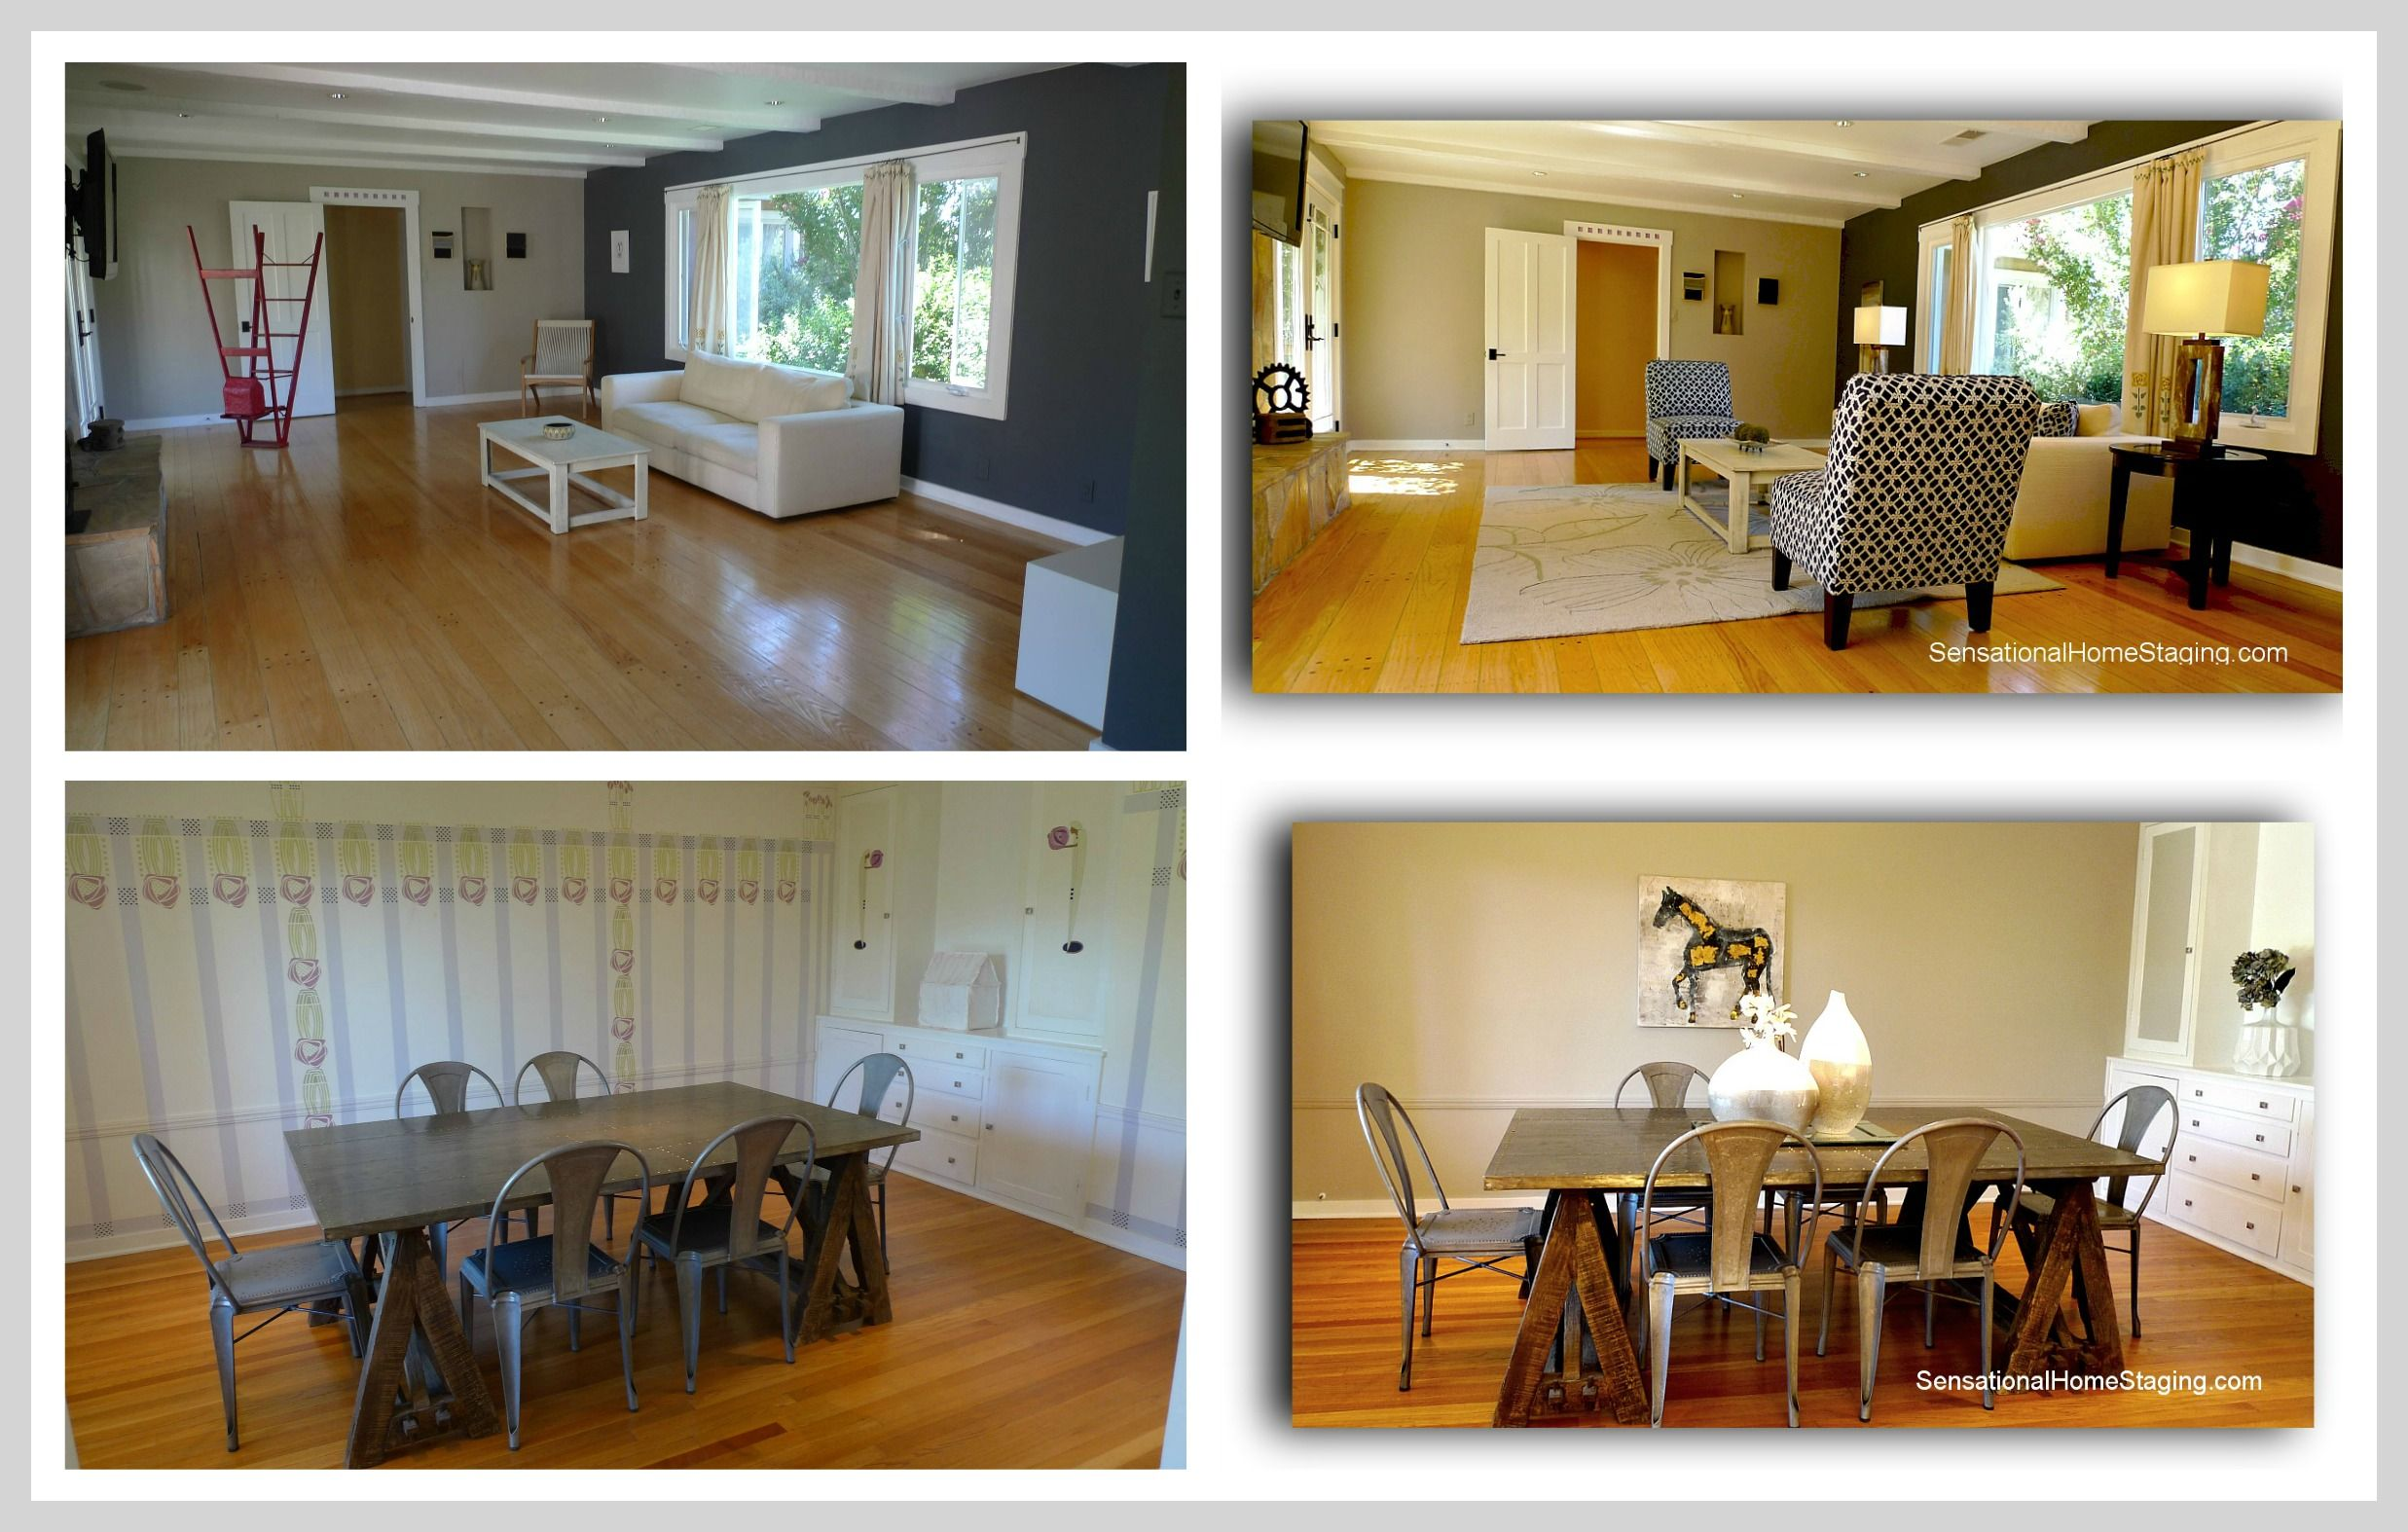 Walnut creek ca home with home staging before after for Before and after home staging